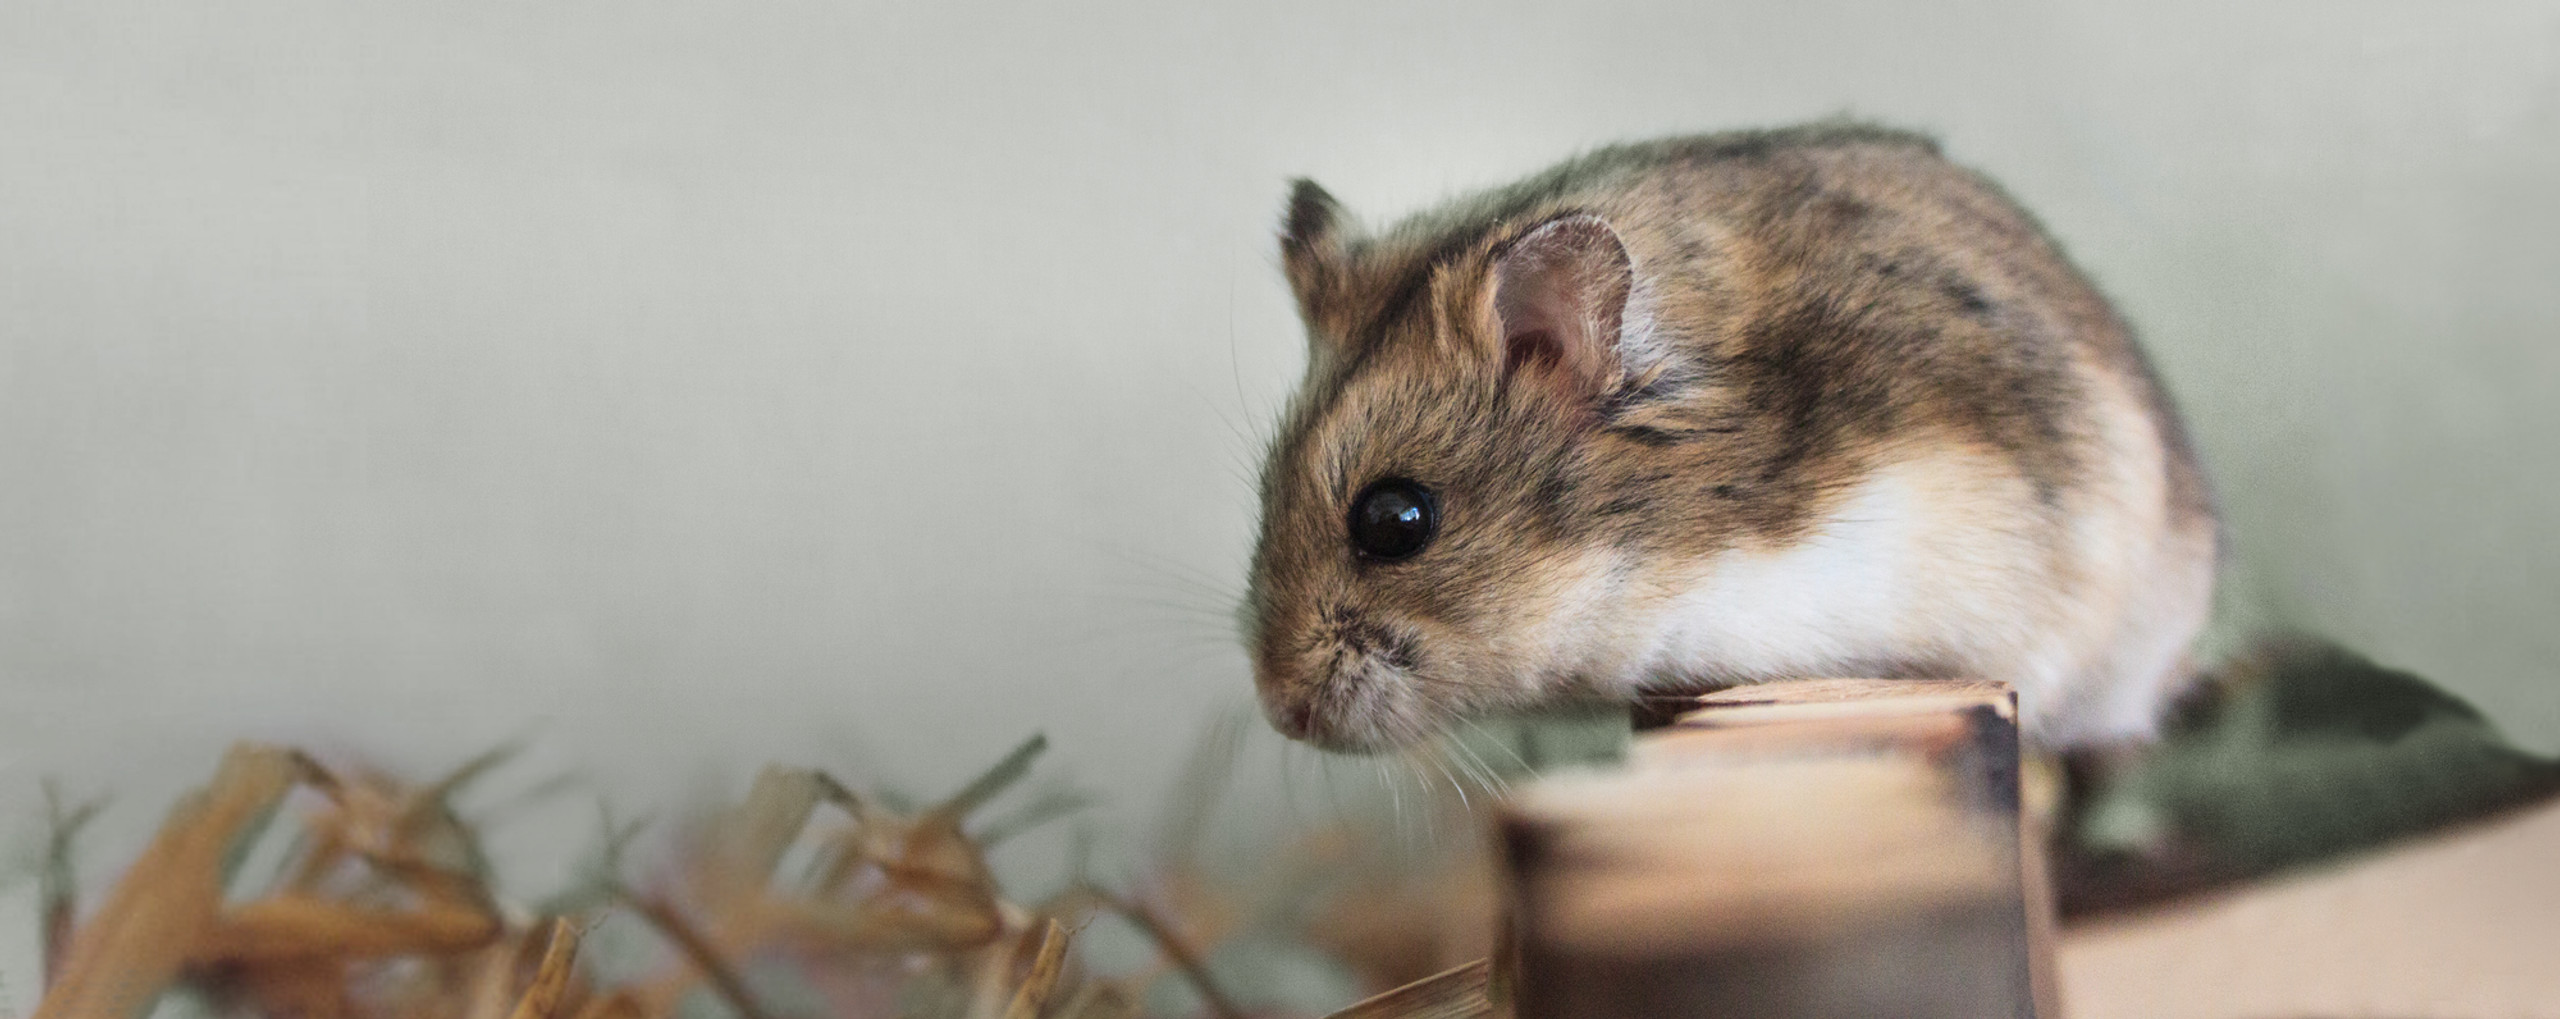 Pet hamster and Sterifab